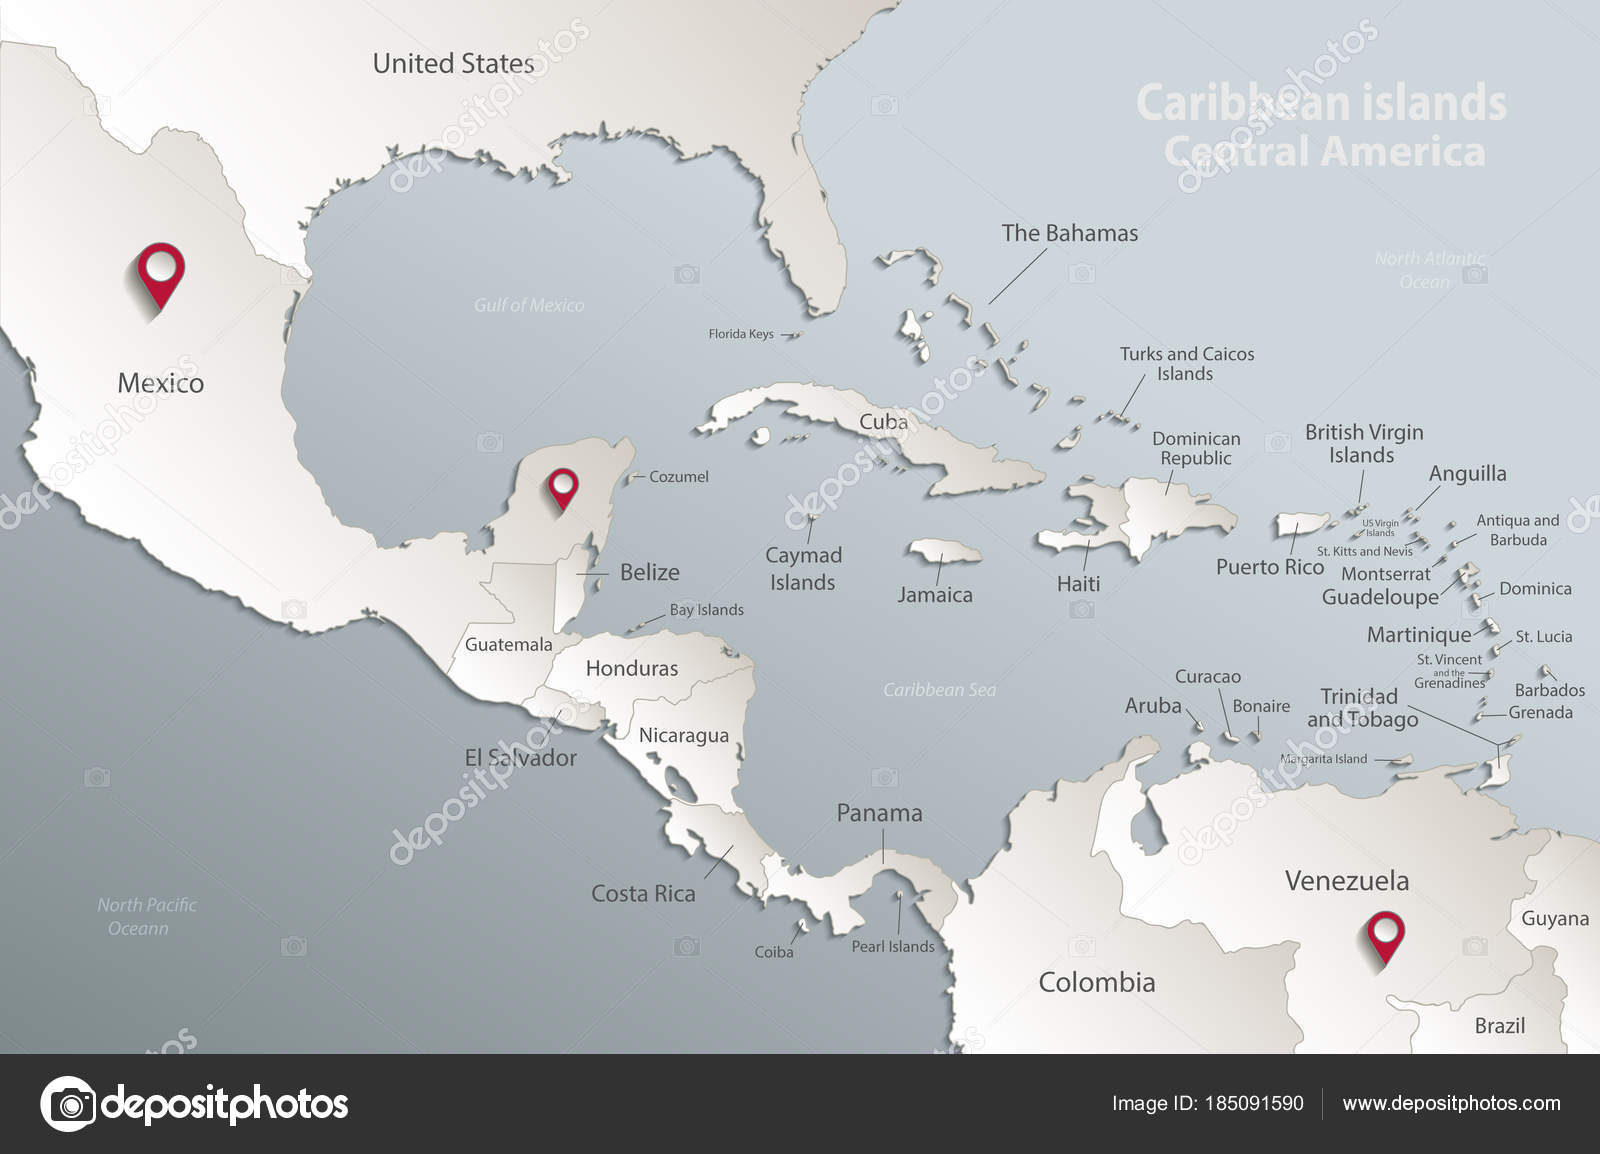 Caribbean Islands Central America Map State Names Separate States